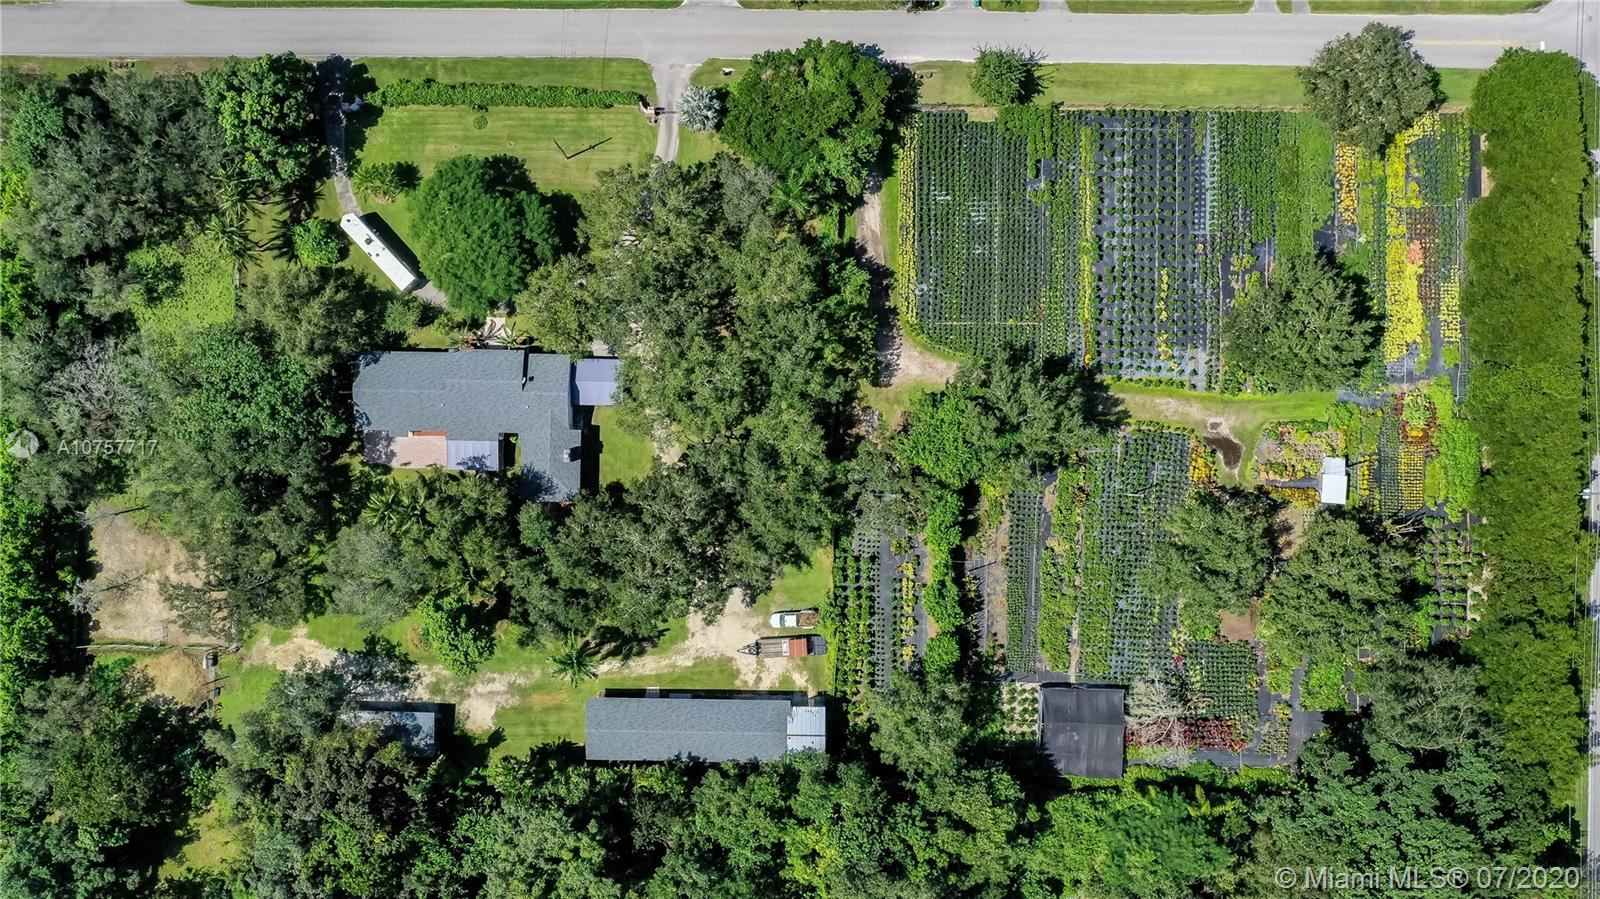 21745 SW 157 AVE, Homestead, FL 33170 - #: A10757717